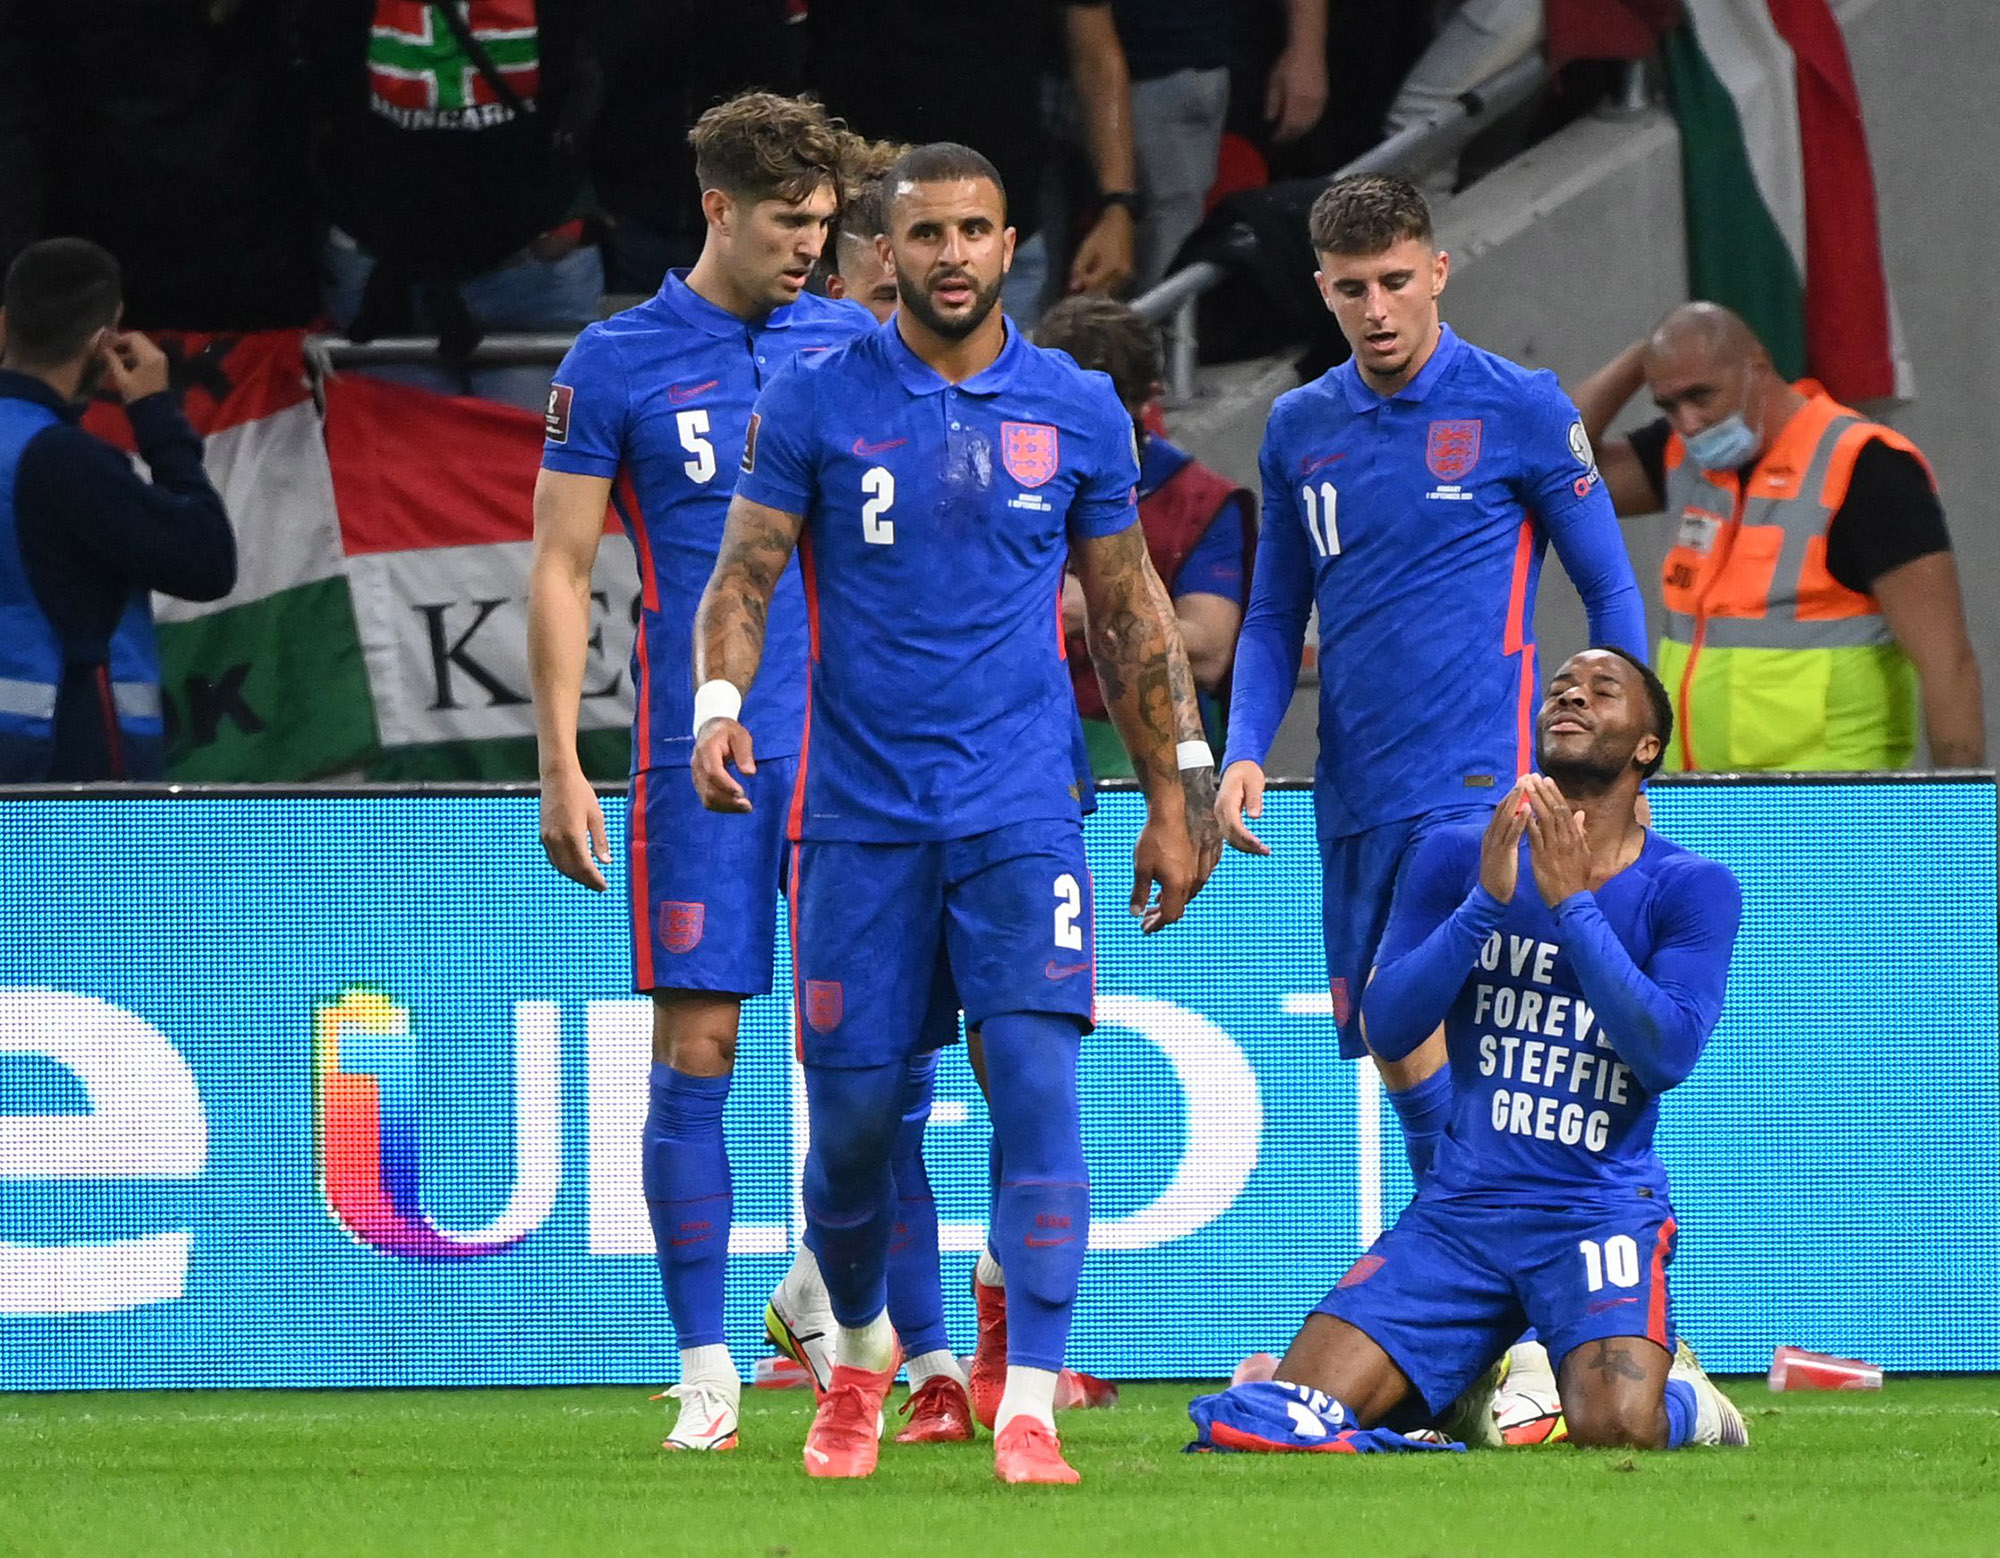 FIFA Pledges Action After Racist Abuse of England in Hungary - Bloomberg